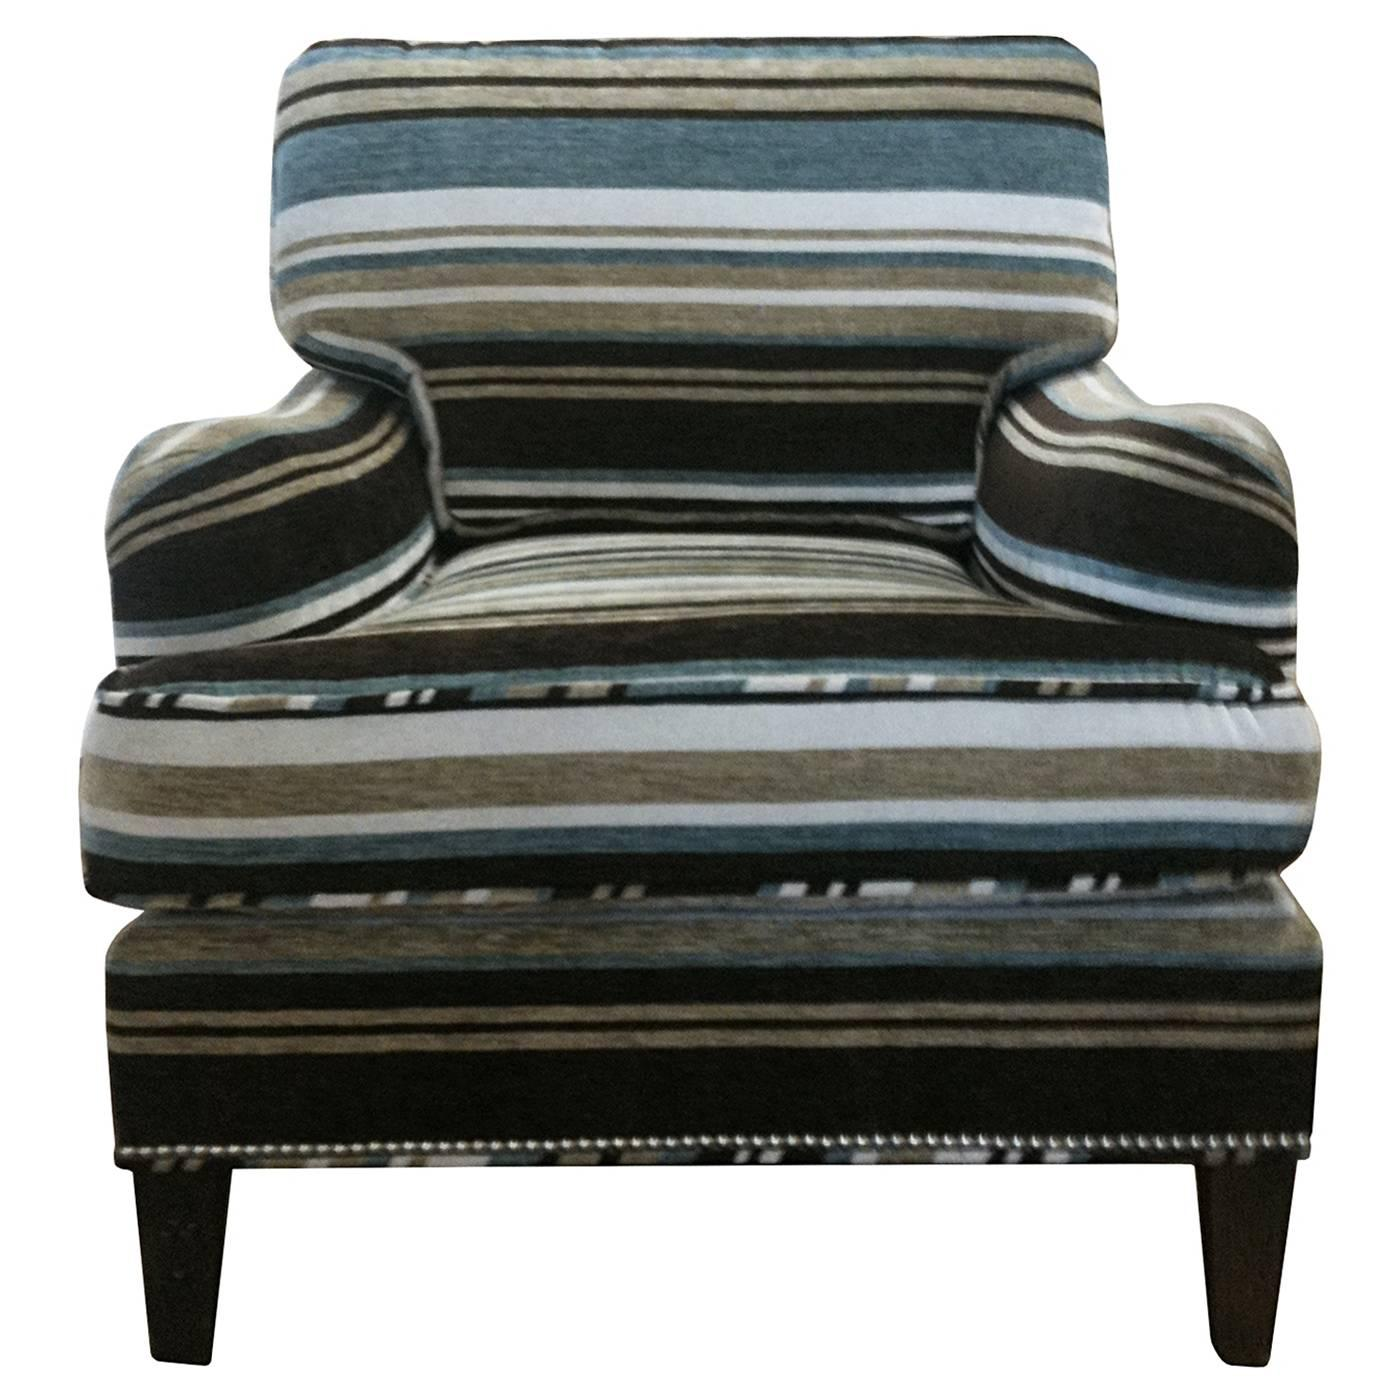 Art Deco Lounge Chair with Mohair Upholstery